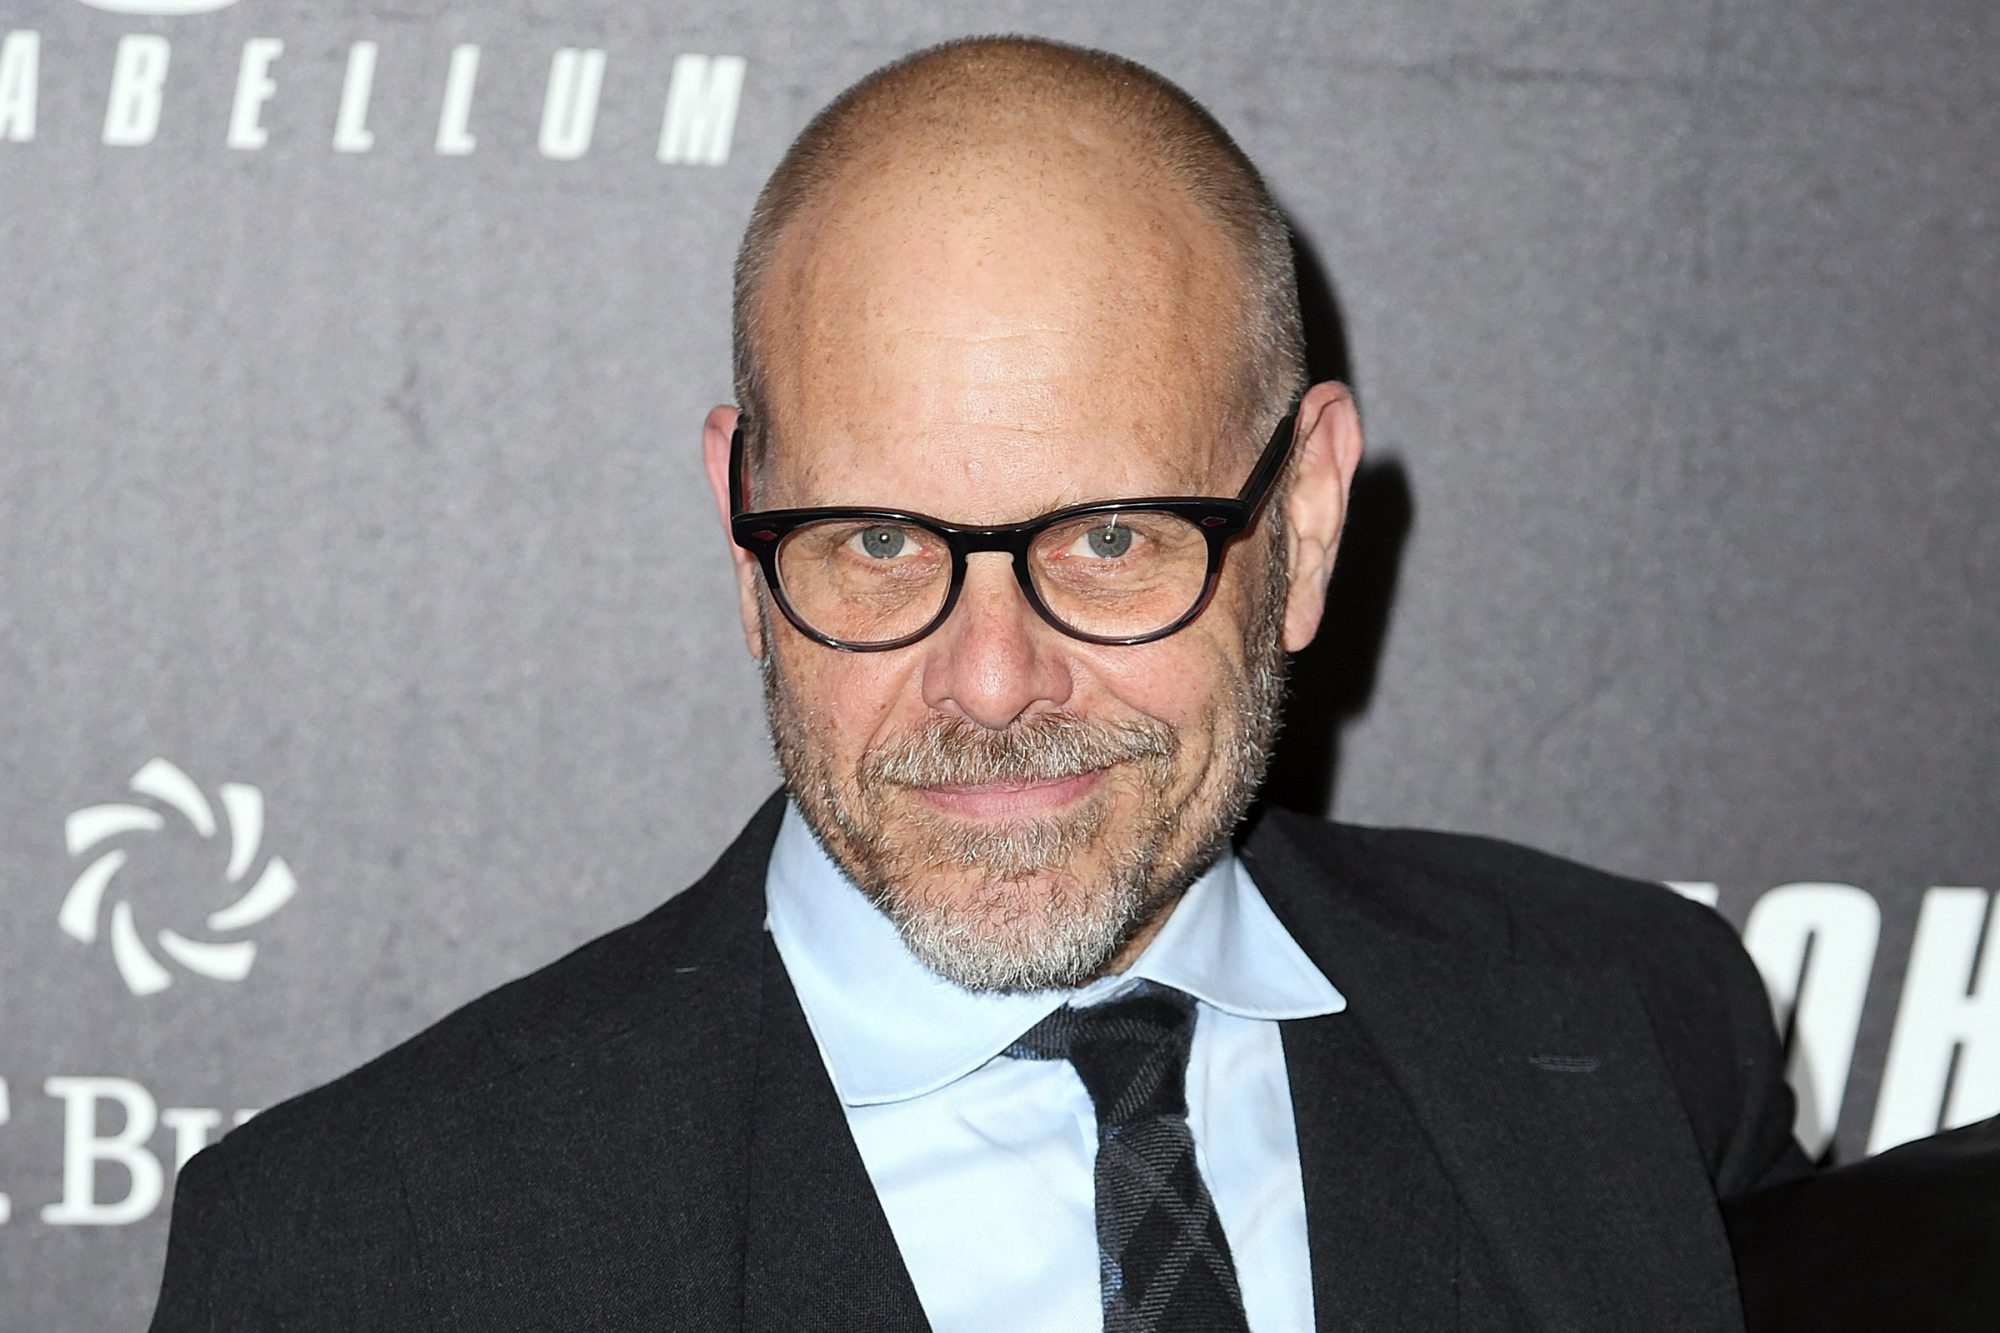 Alton Brown Net Worth 2020, Biography, Education and Career